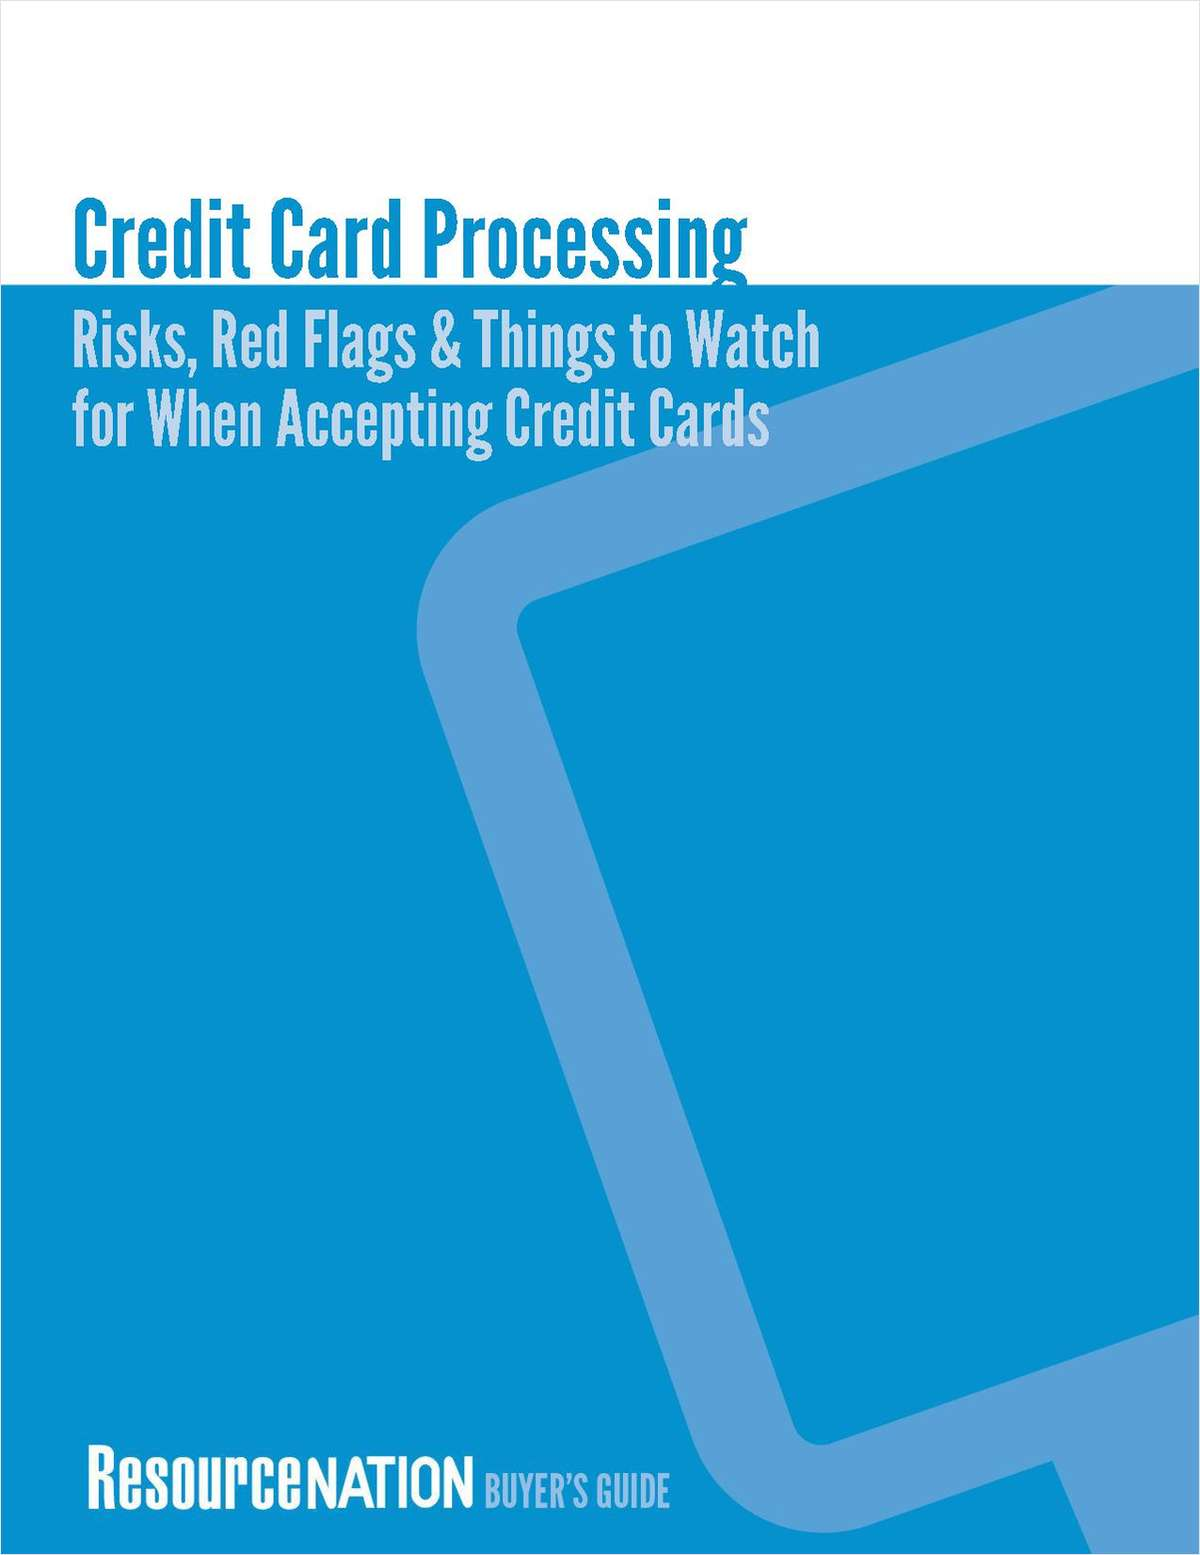 Risks, Red Flags, and Things to Watch For When Accepting Credit Cards